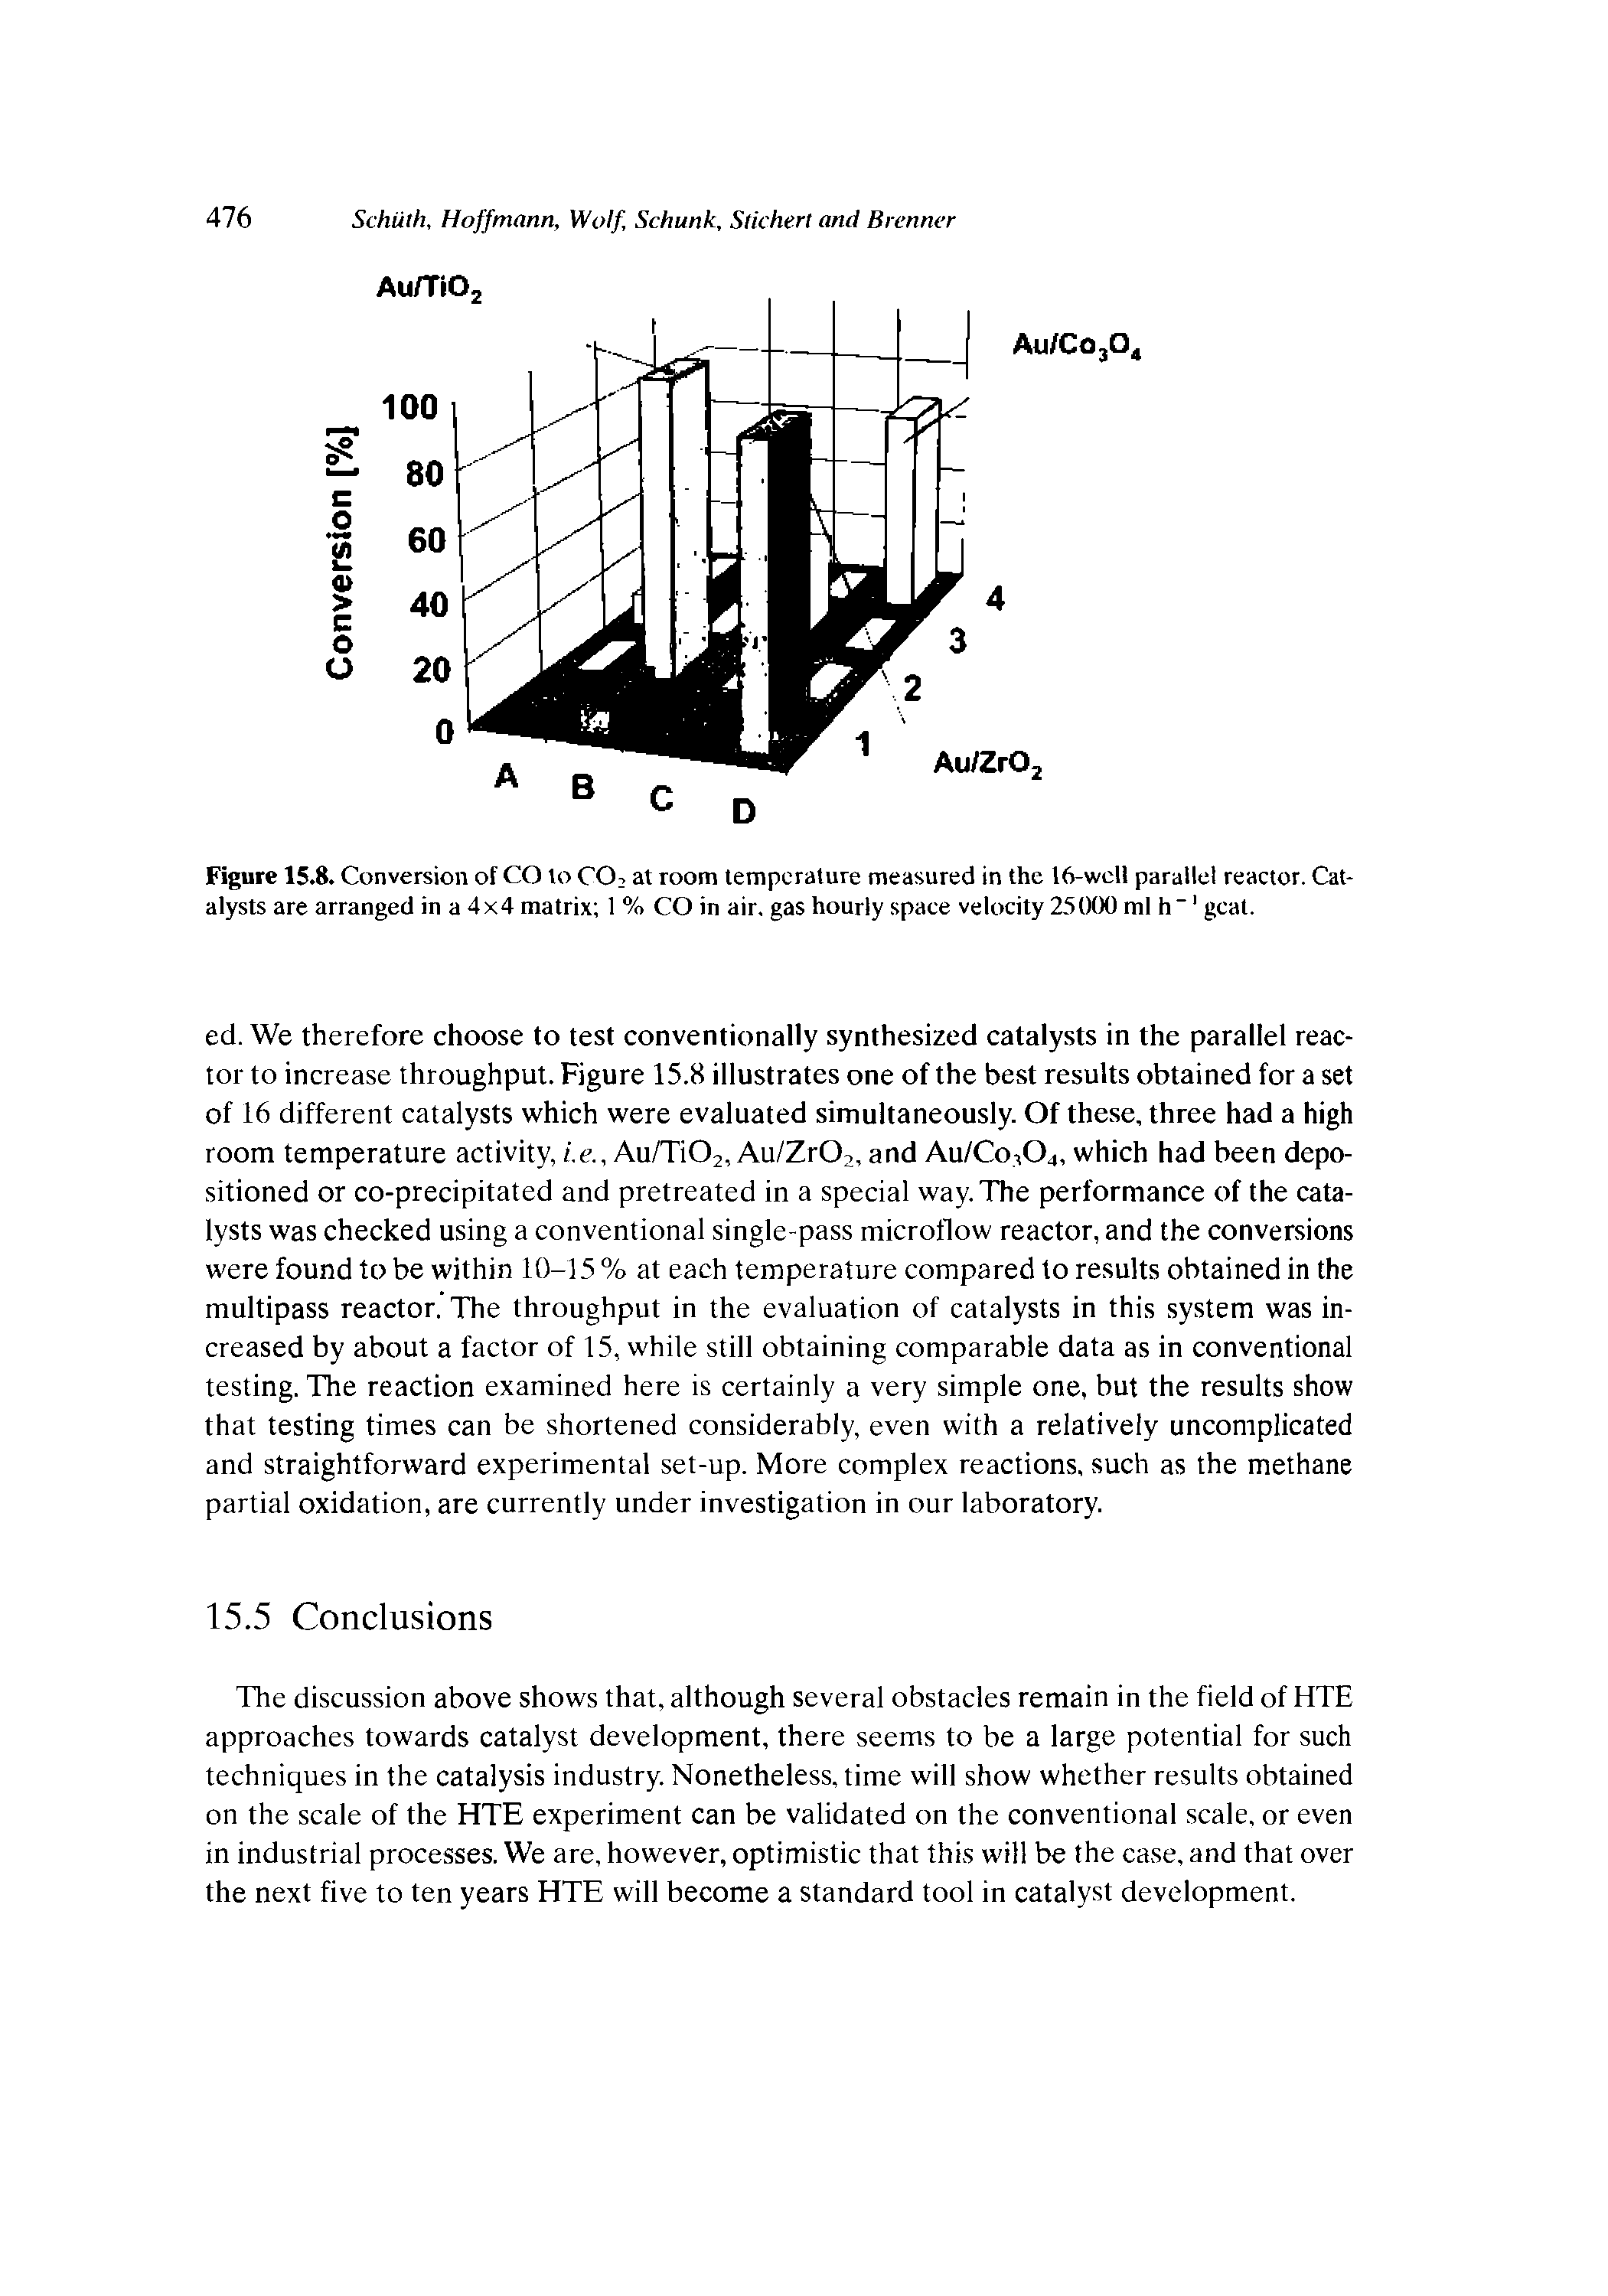 "Figure 15.8. Conversion of CO to C02 at room temperature measured in the 16-well parallel reactor. Catalysts are arranged in a 4x4 matrix 1 % CO in air. gas hourly space velocity 25OCX) ml h""1 gcat."